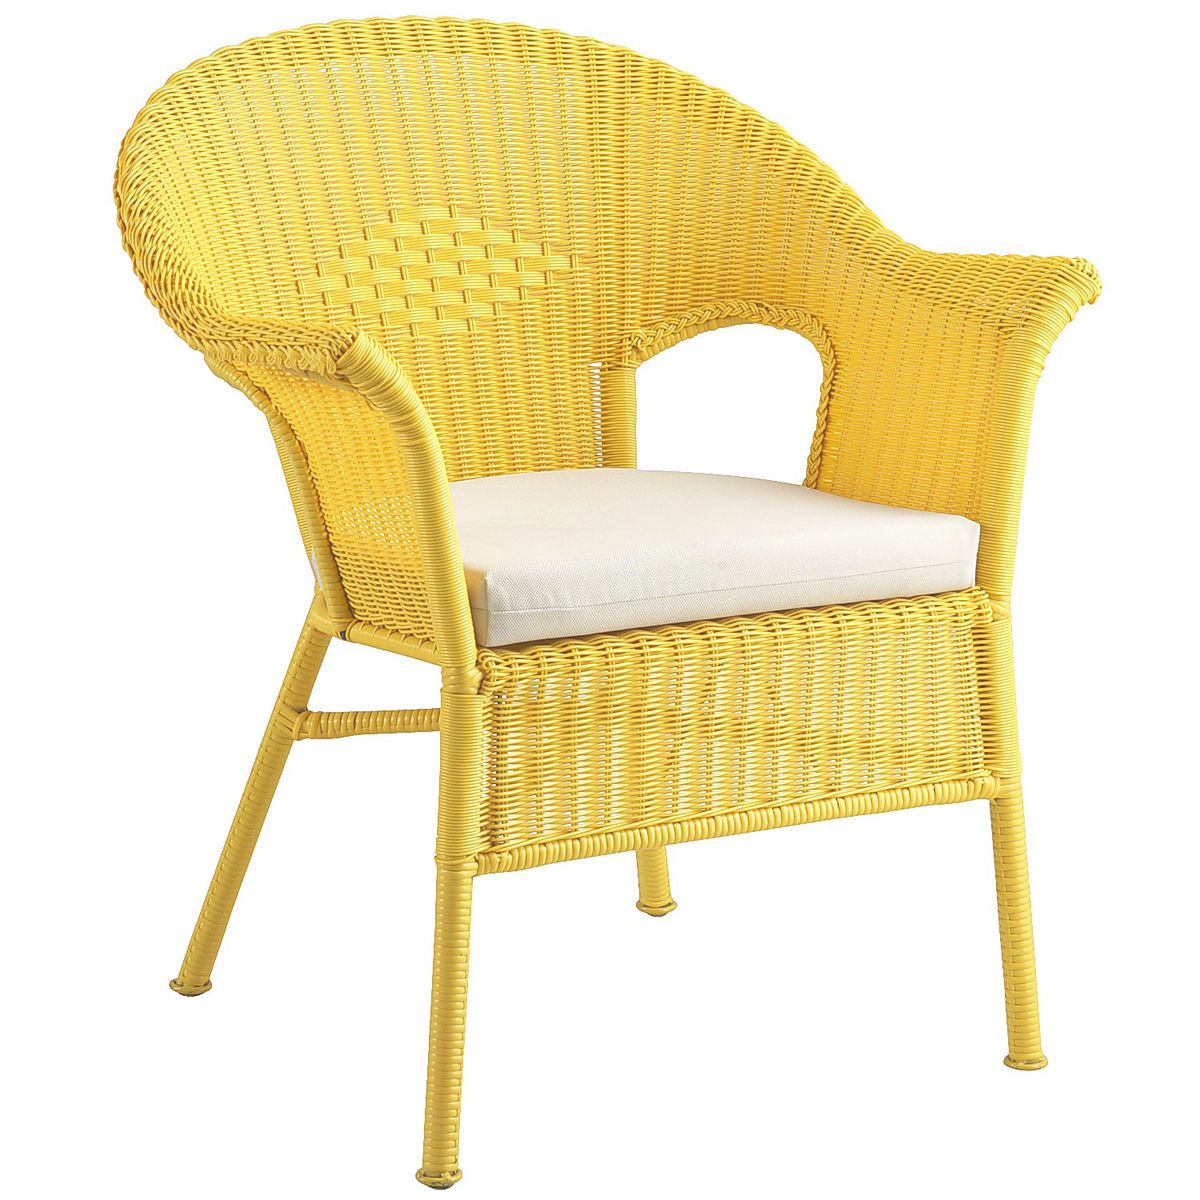 casbah chair yellow outdoor chairs